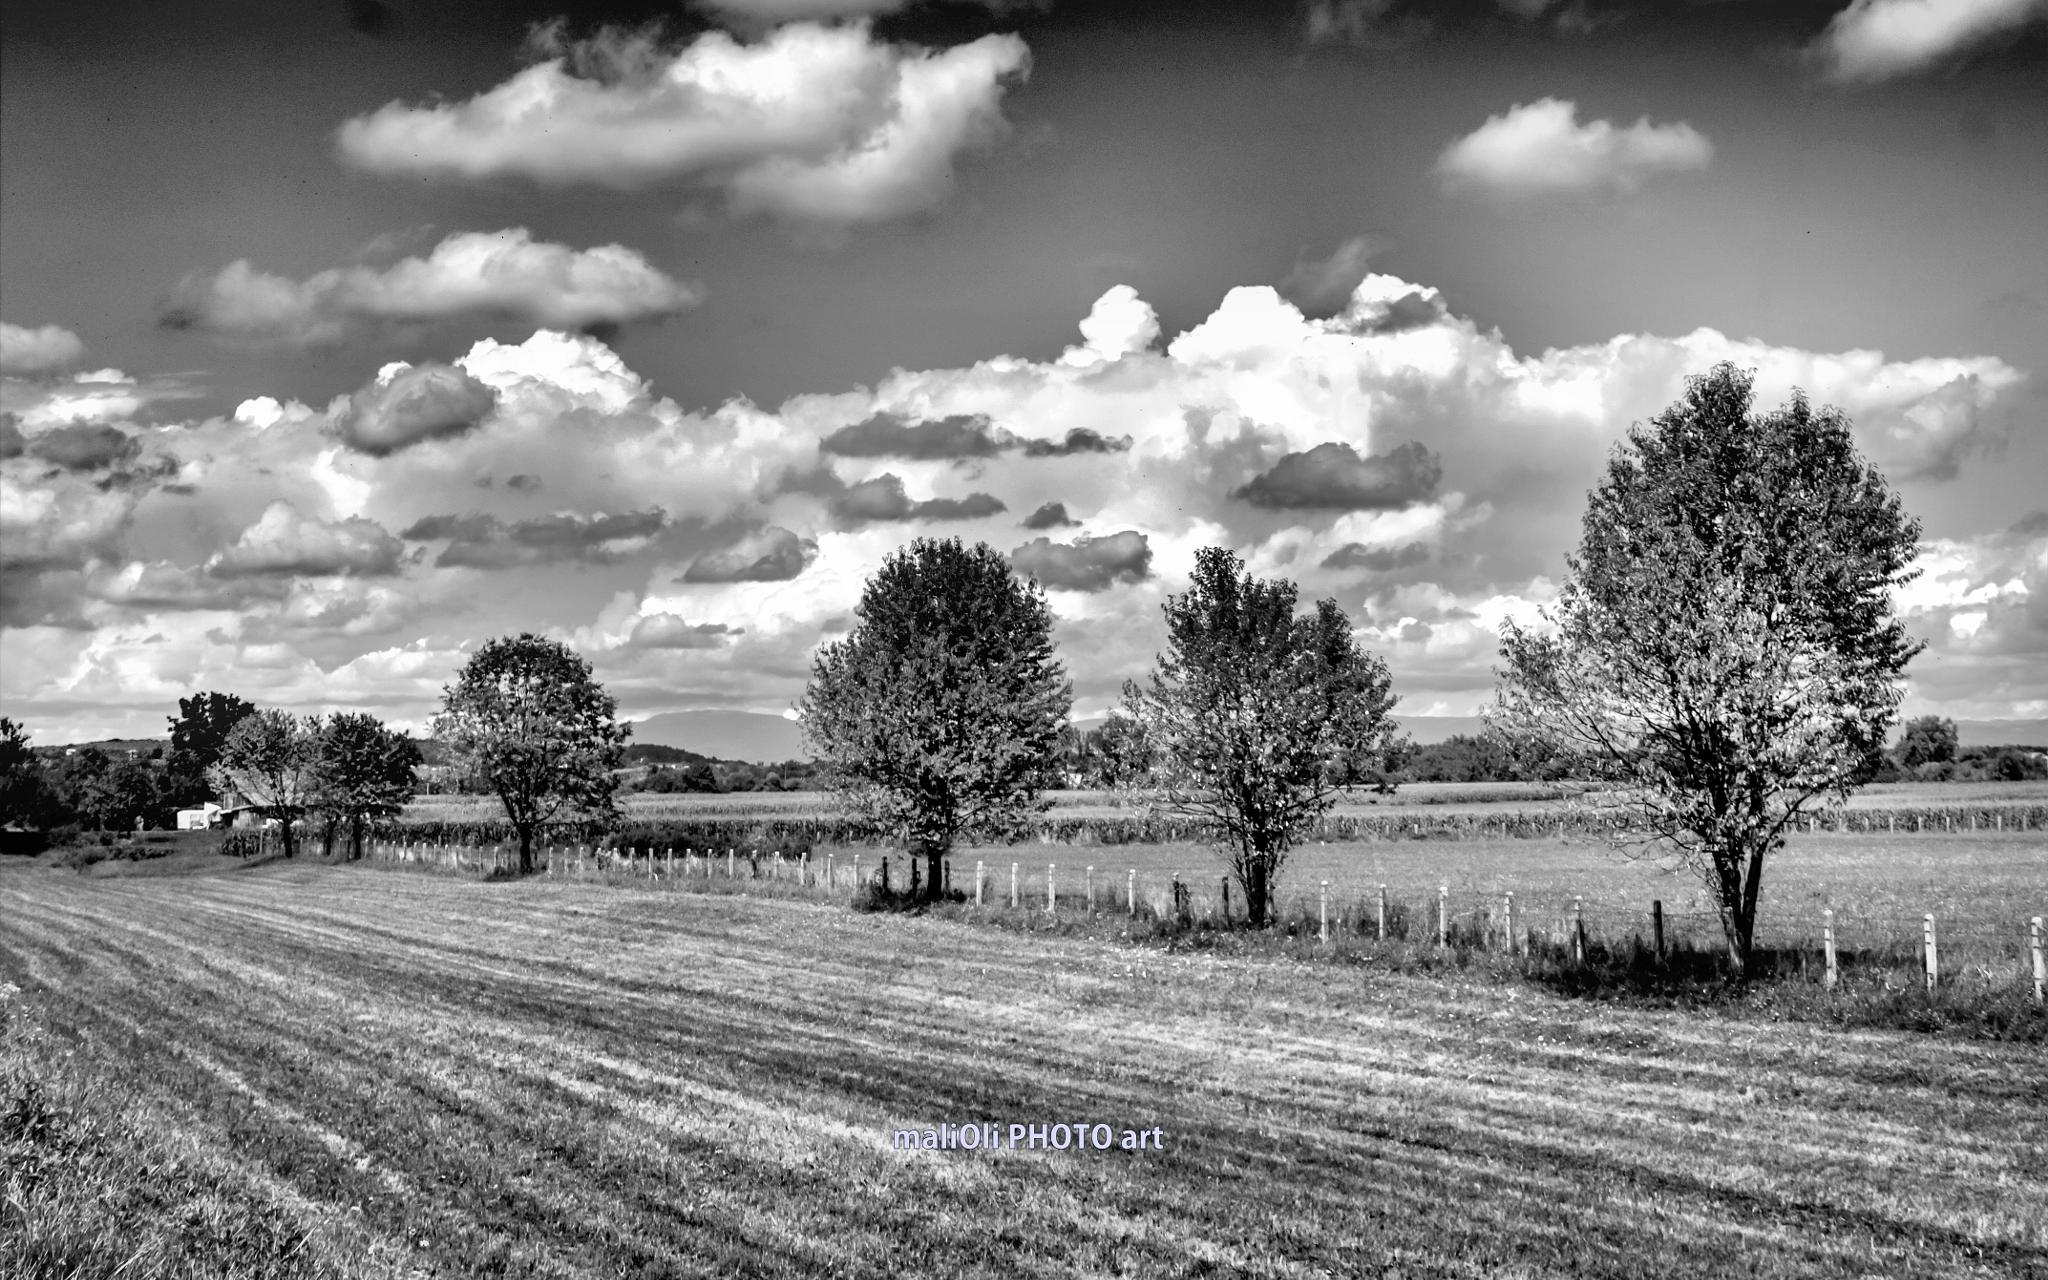 Plam trees in the line by oliversvob